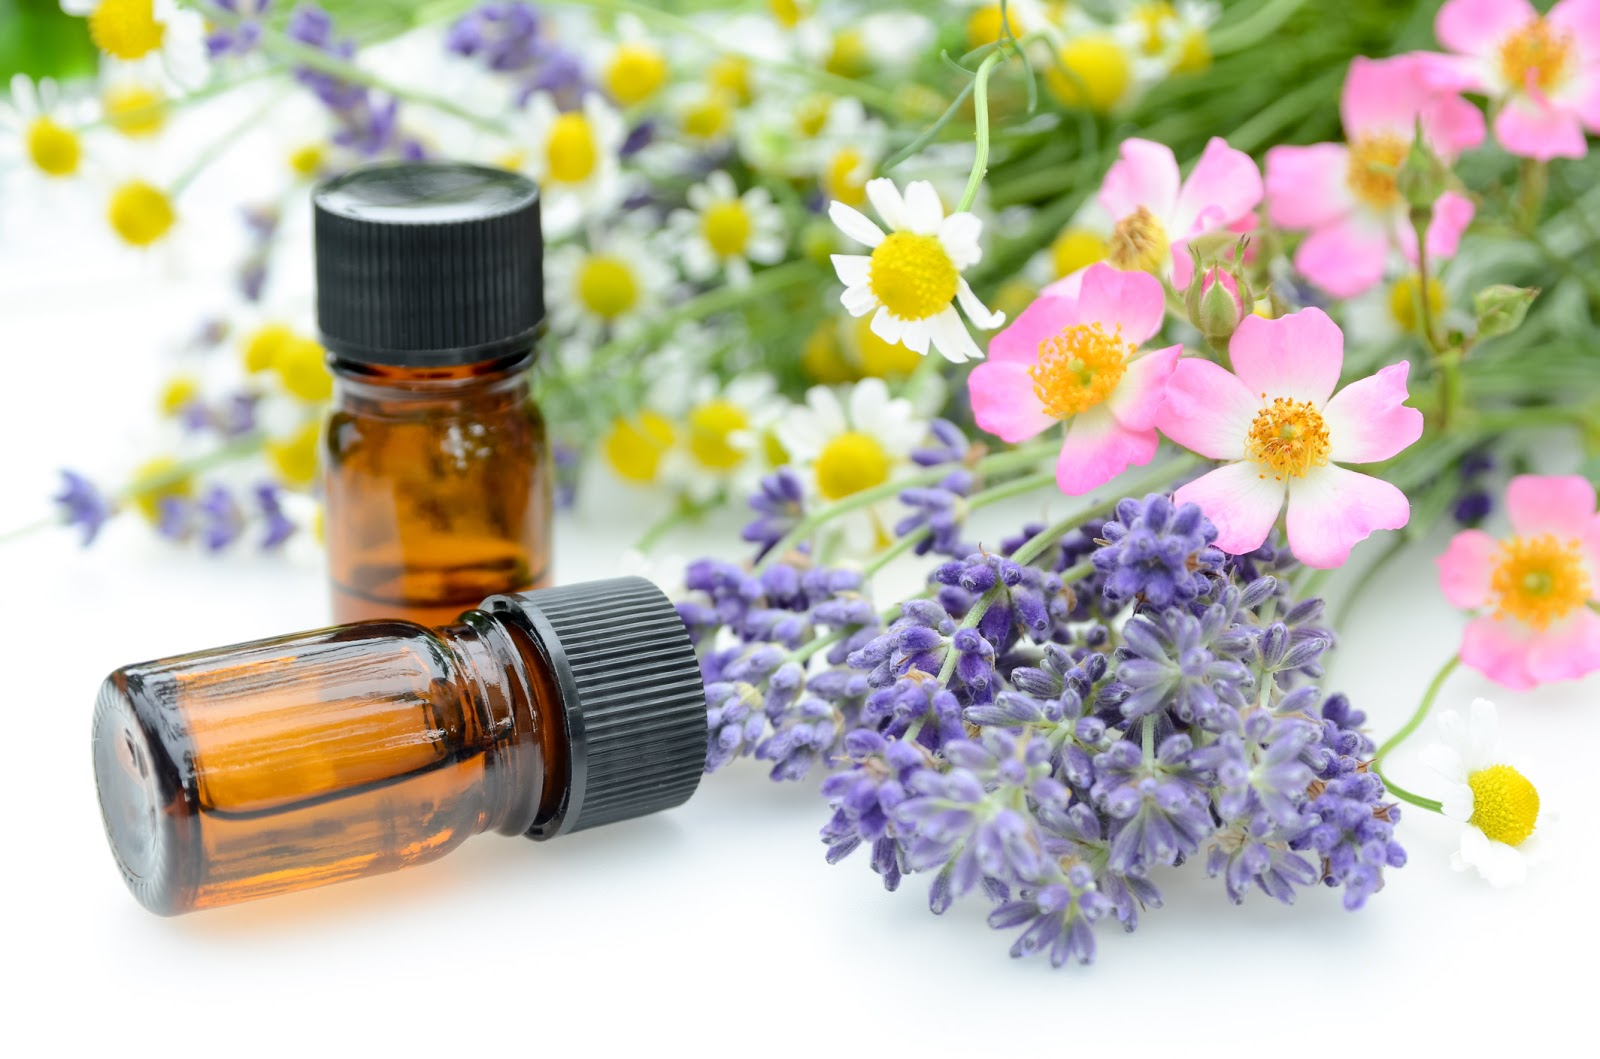 essential oils for aromatherapy treatment with herbal flowers using chamomile, roses, and lavender on white background